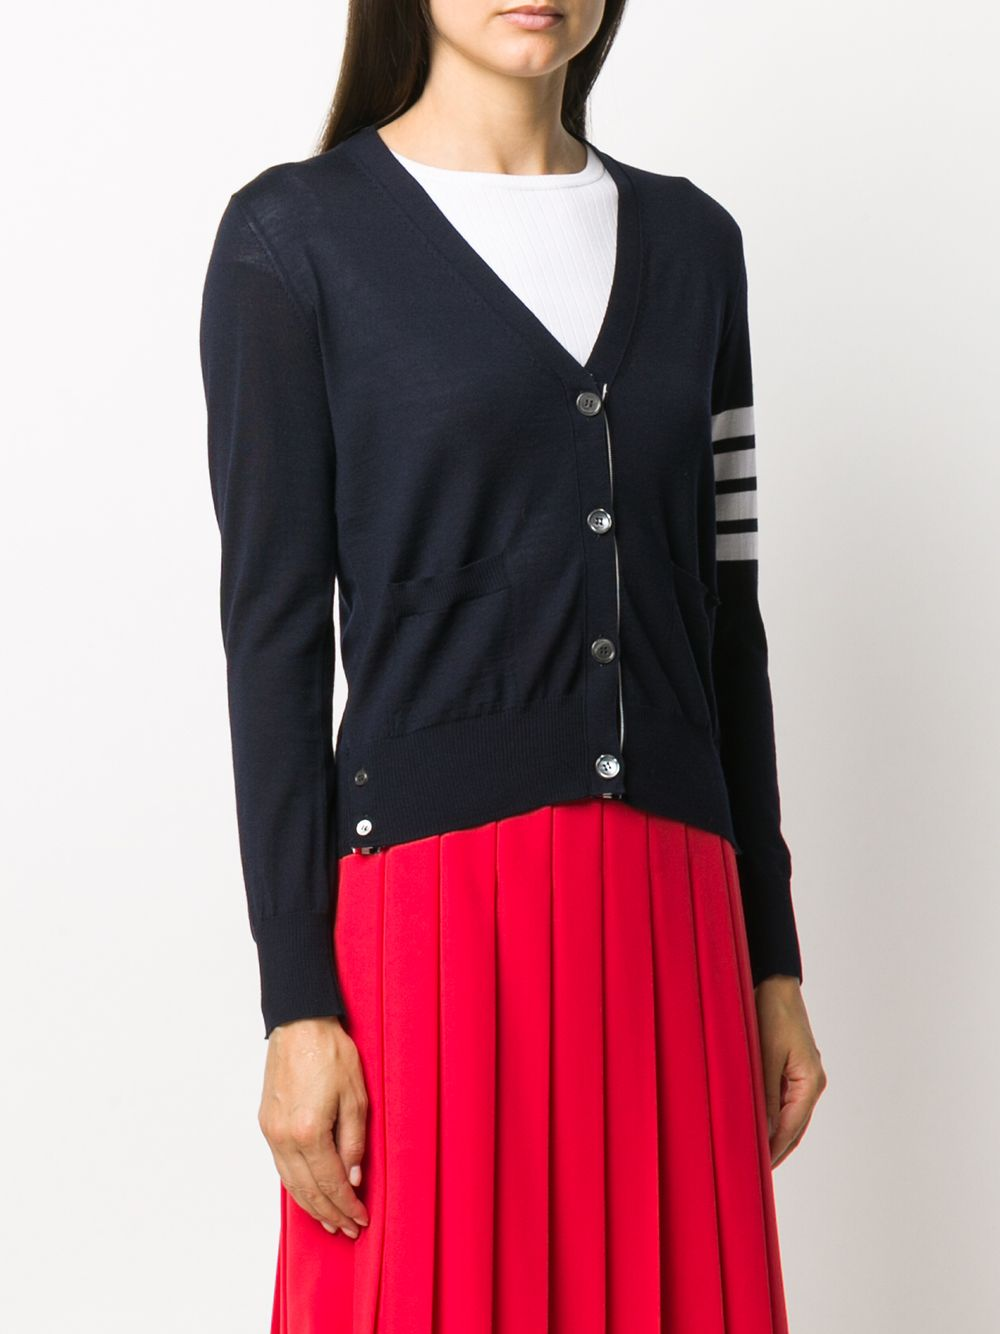 THOM BROWNE WOMEN RELAXED FIT V NECK CARDIGAN W/ 4 BAR IN FINE MERINO WOOL